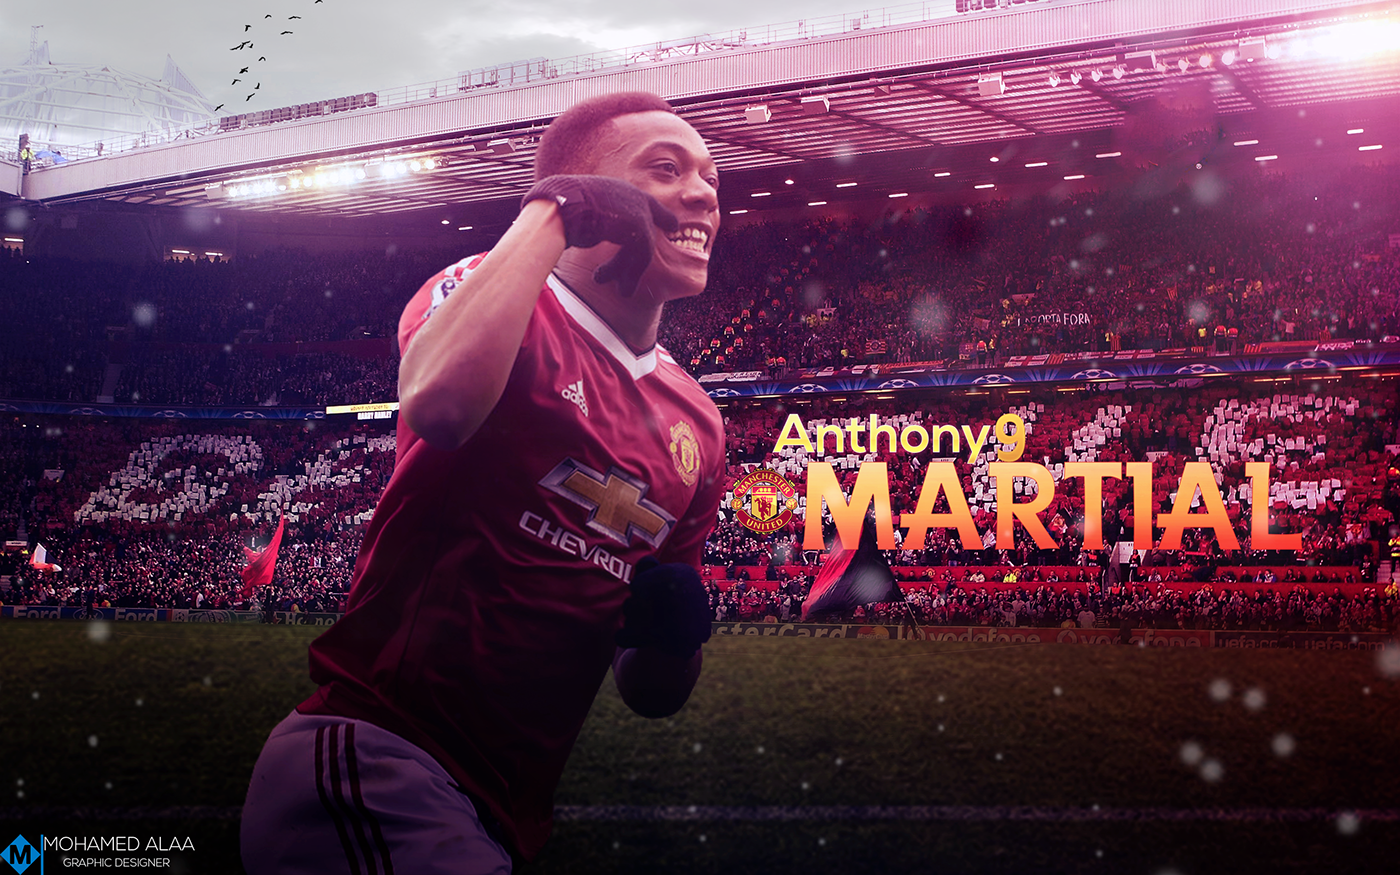 'ANTHONY MARTIAL' WALLPAPER On Behance